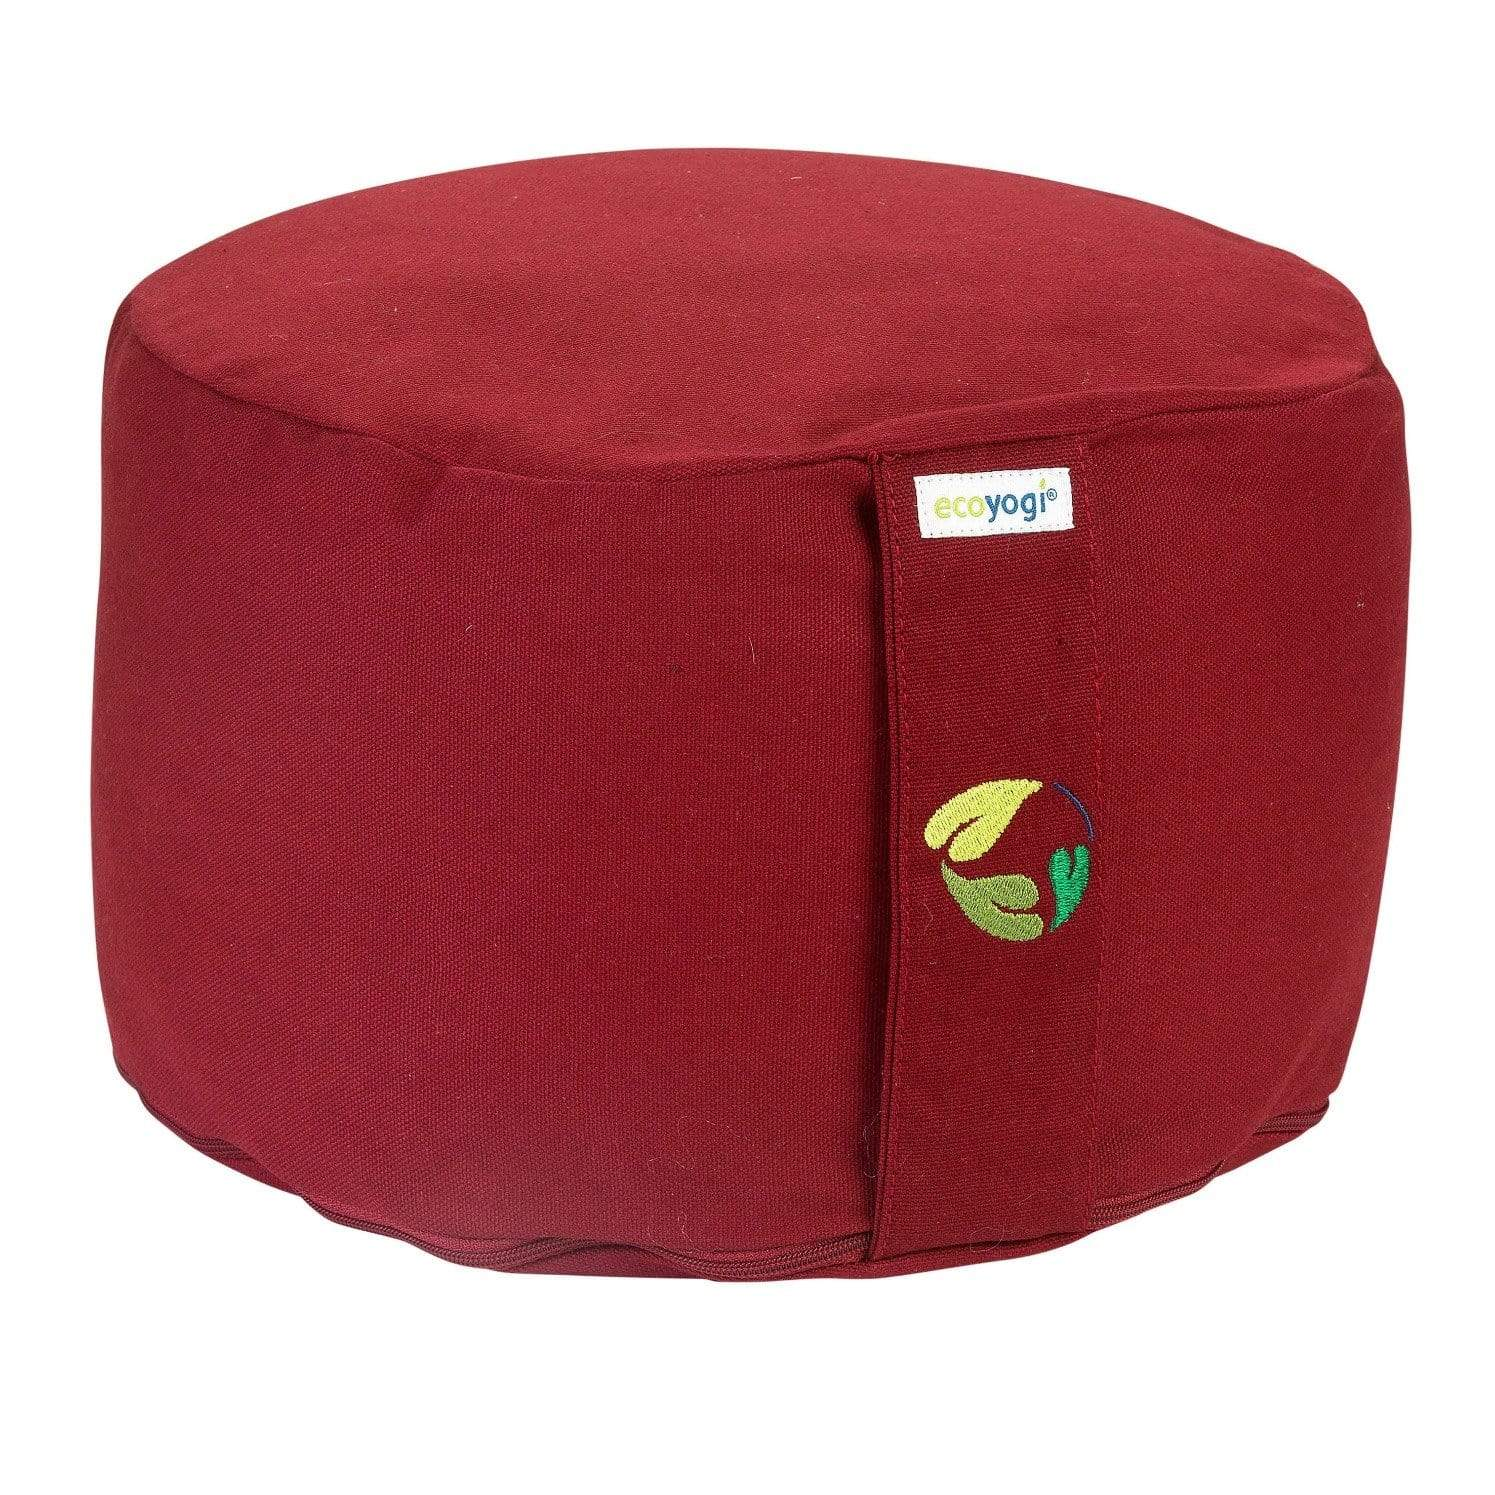 Sustainable meditation cushion in bordeaux made of organic cotton (GOTS certified) and filling in natural purified buckwheat chaff